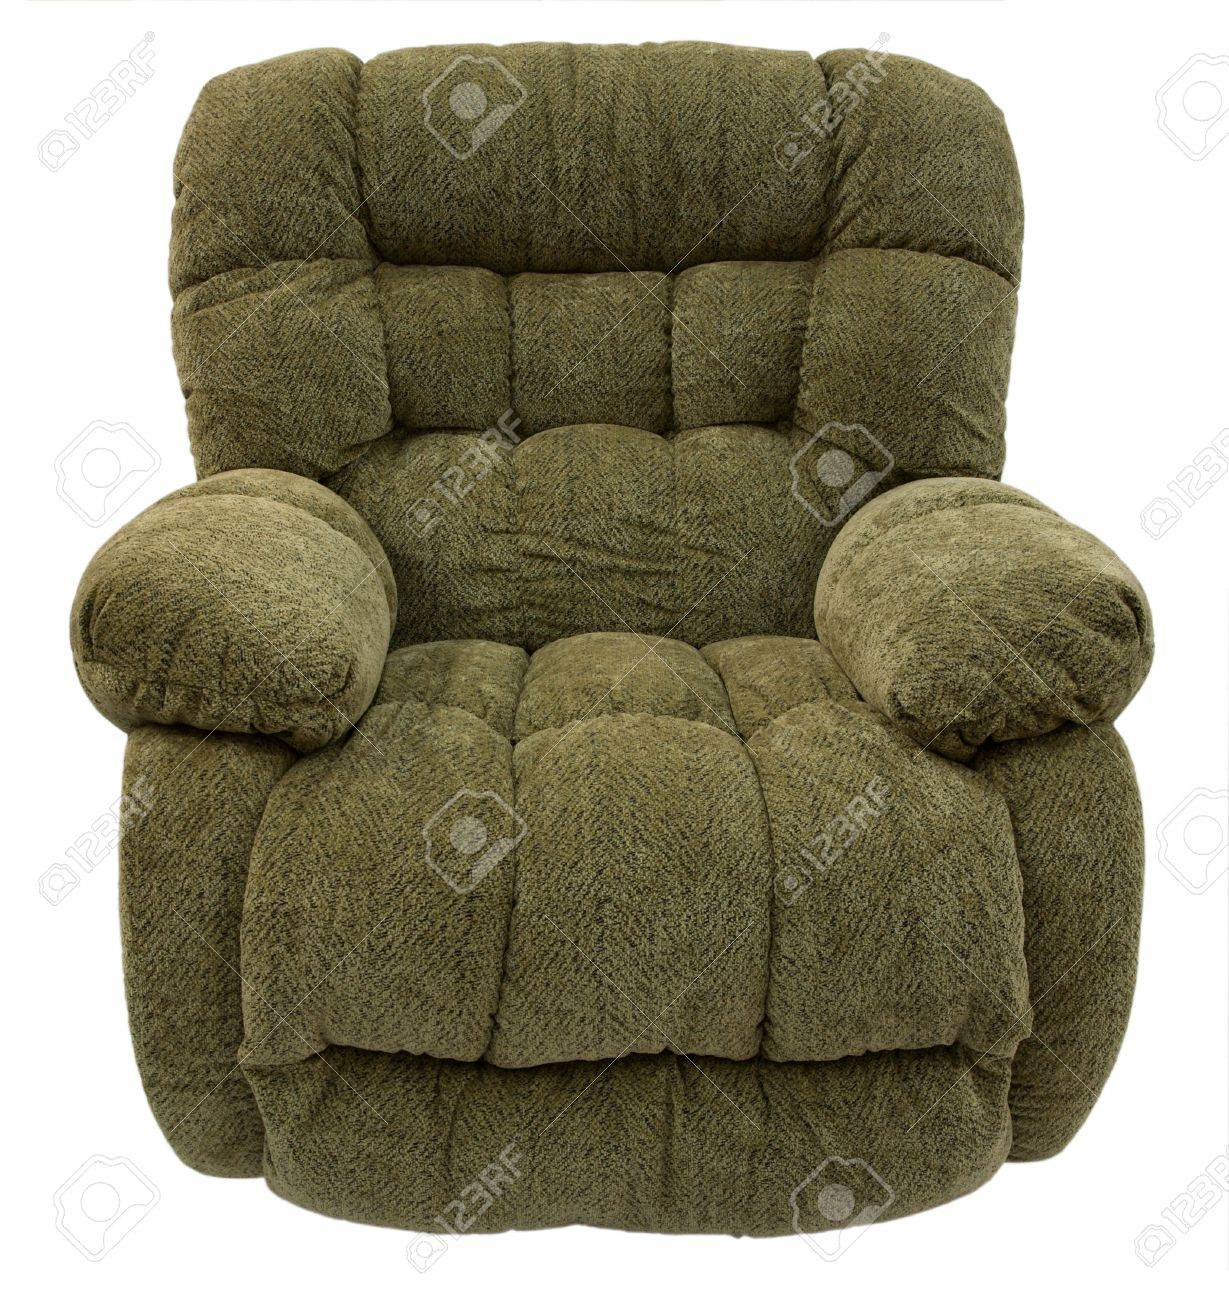 Big and Plush Rocker Recliner in Sage Acrylic Fabric Stock Photo - 2684370  sc 1 st  123RF Stock Photos & Big And Plush Rocker Recliner In Sage Acrylic Fabric Stock Photo ... islam-shia.org